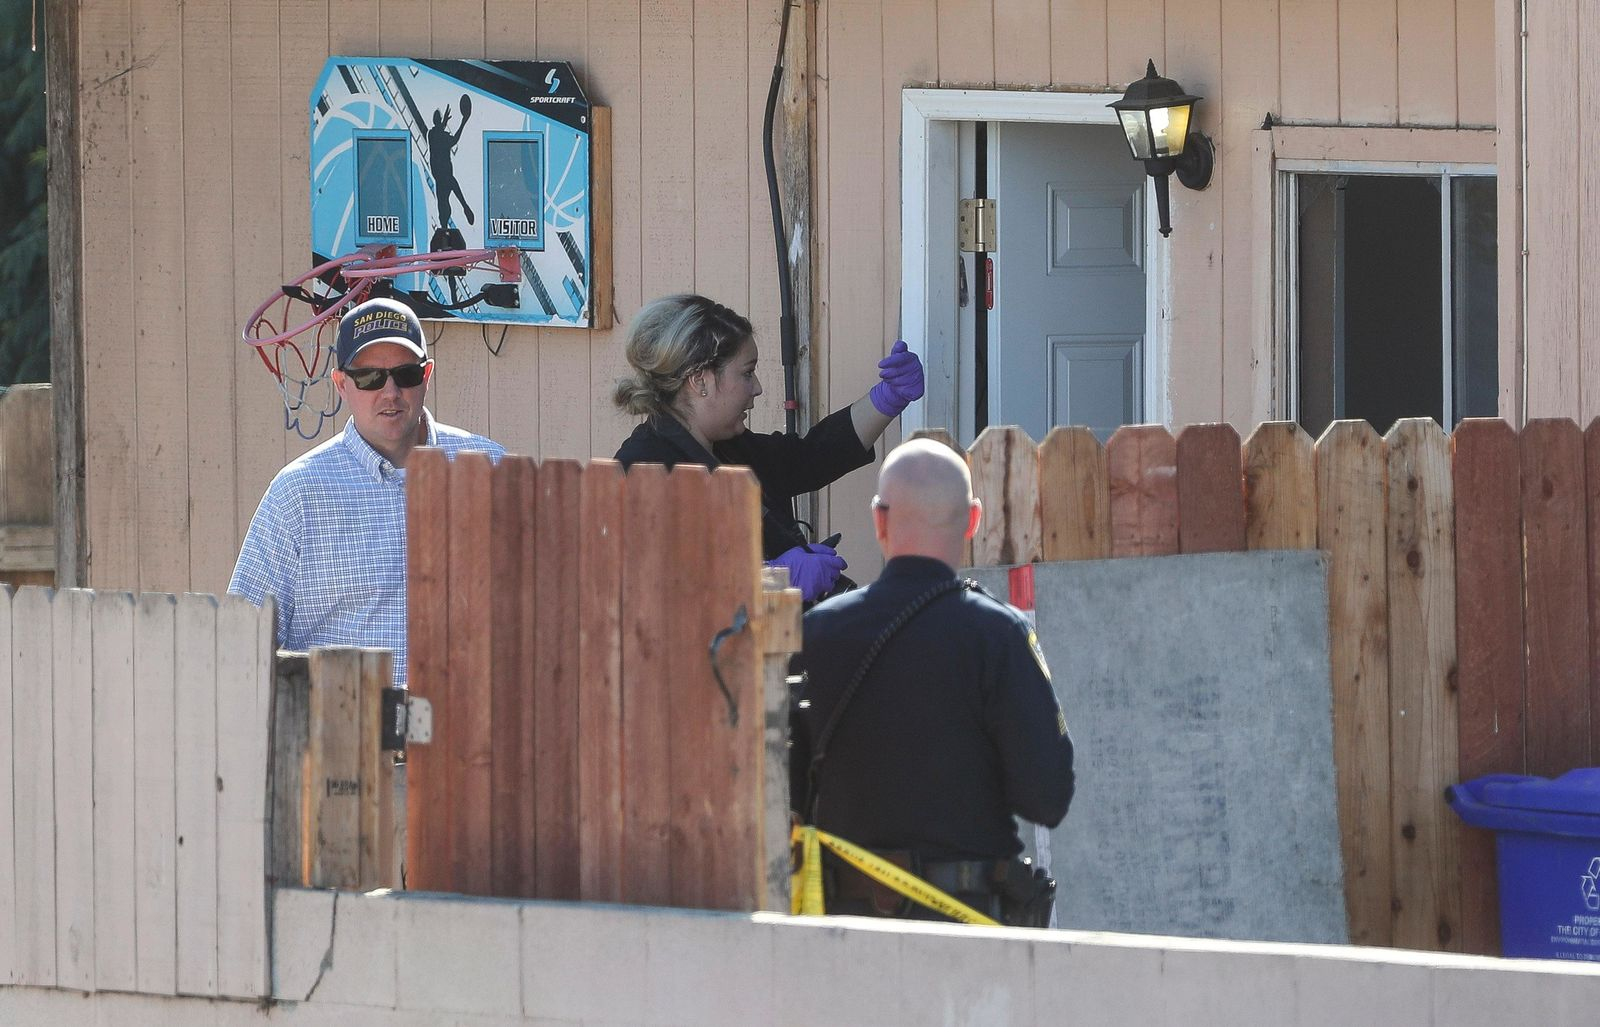 San Diego Police investigate the home where two adults and three children died from gunshot wounds during a domestic shooting in the Paradise Hills area in San Diego, Calif., Saturday, Nov. 16, 2019. A husband and wife and three of their young children died Saturday morning at the family's San Diego home in what police believe was a murder-suicide sparked by a bitter divorce. One son is in critical condition. (Hayne Palmour IV/The San Diego Union-Tribune via AP)